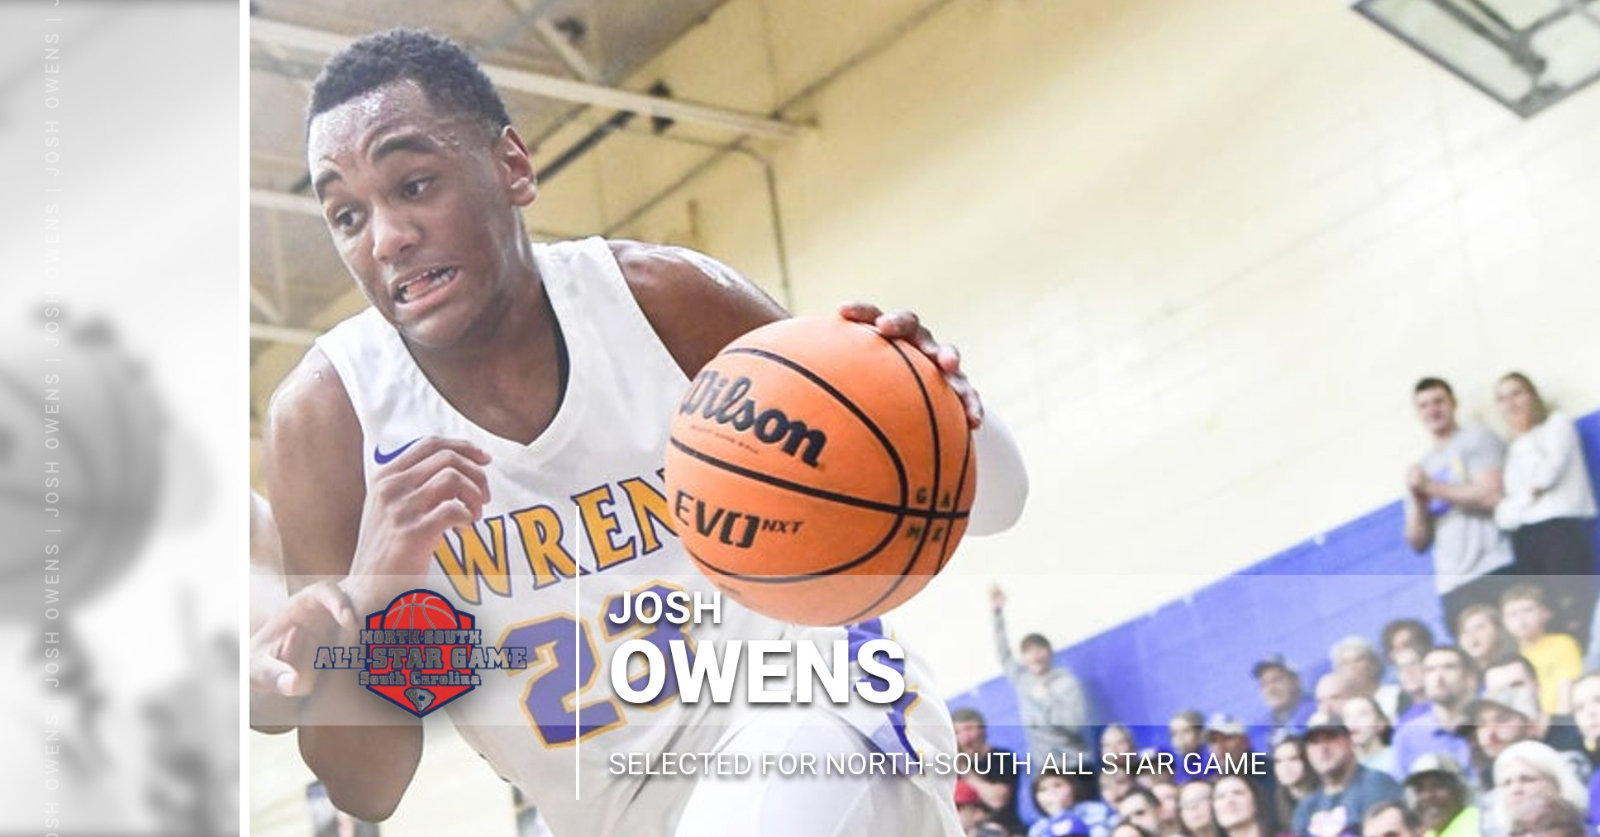 Josh Owens Selected for North-South All Star Game